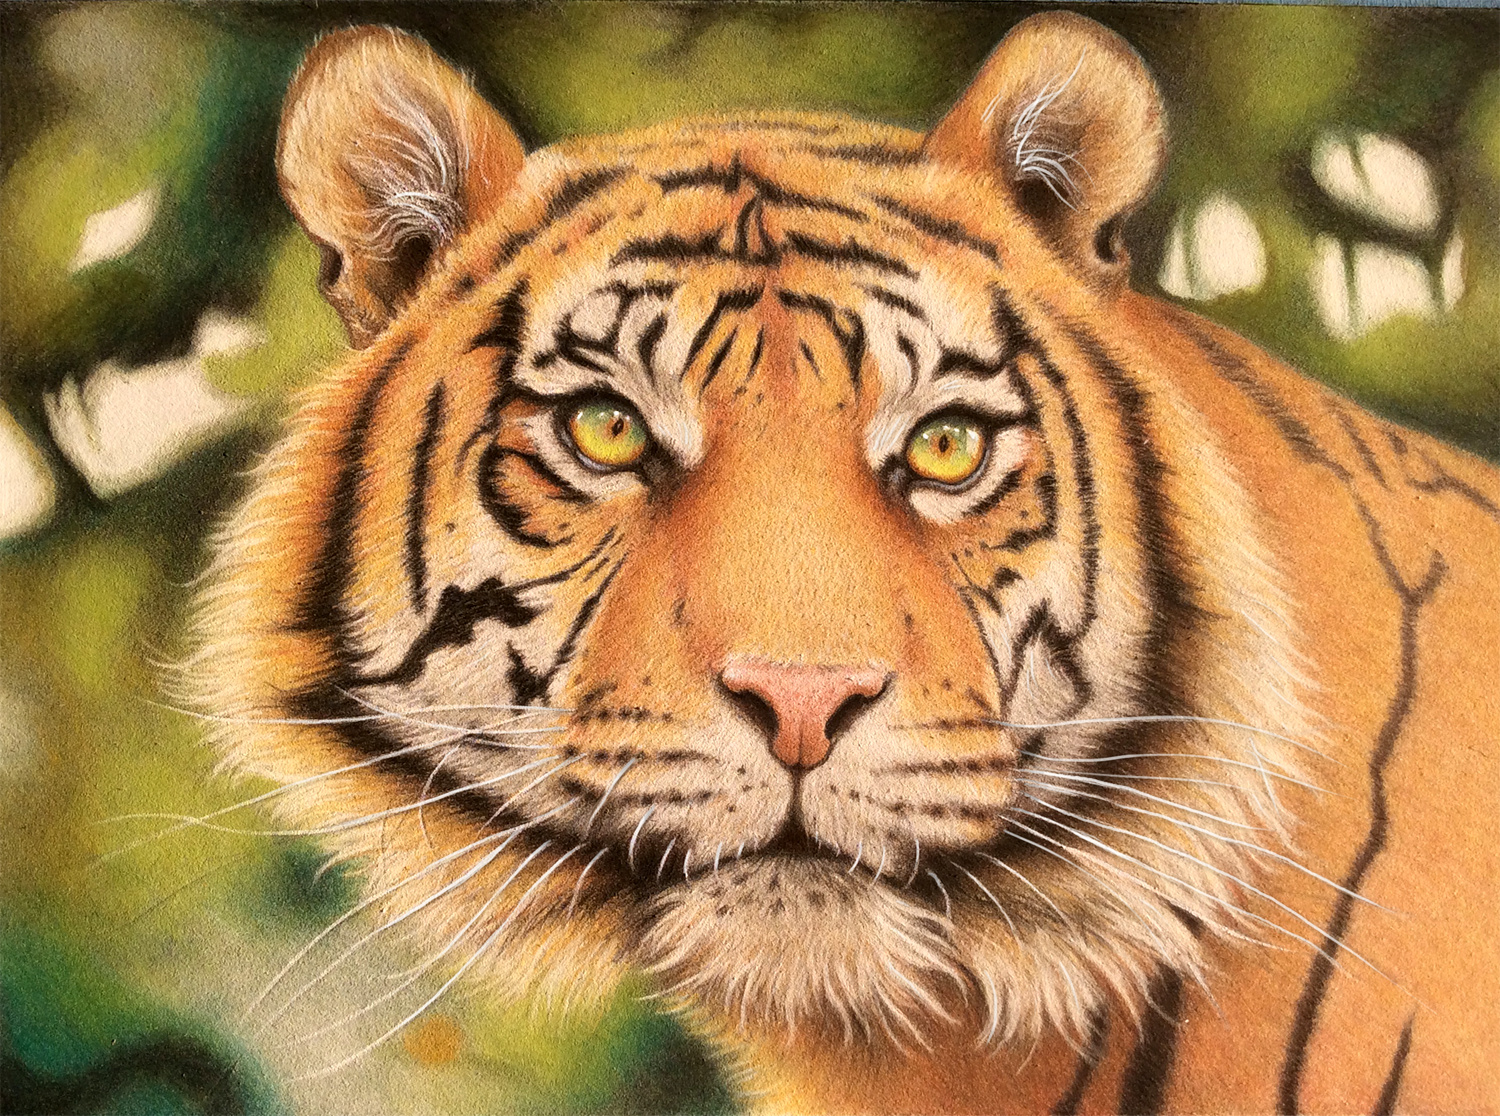 Tiger in Colored Pencils